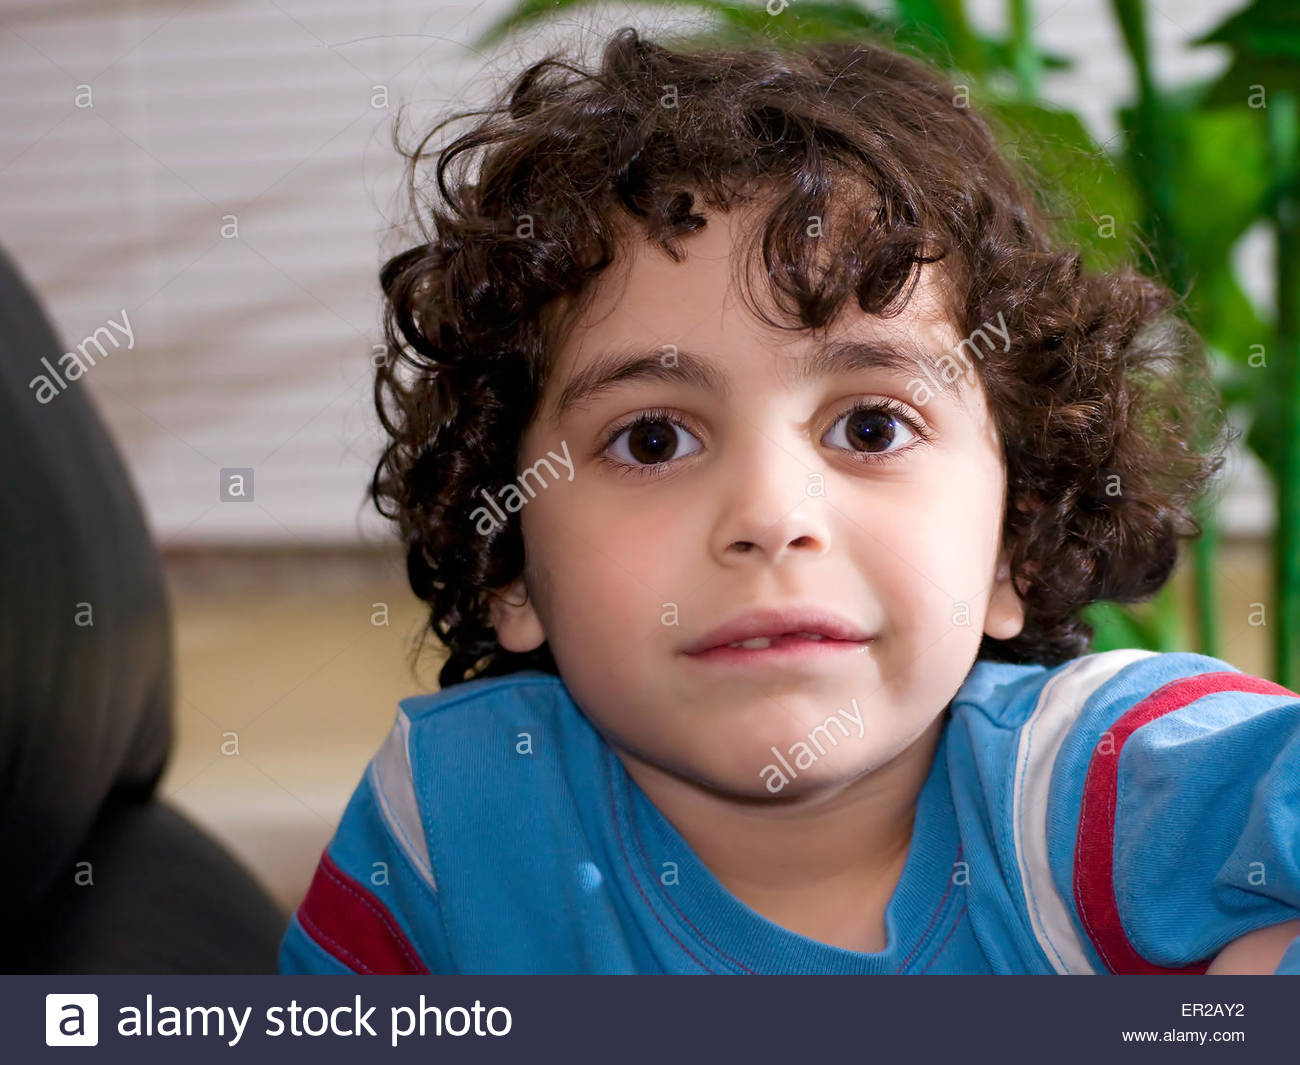 Adorable little boy with big brown eyes and curly dark hair and light fair skin smiles for the camera! - Stock Image